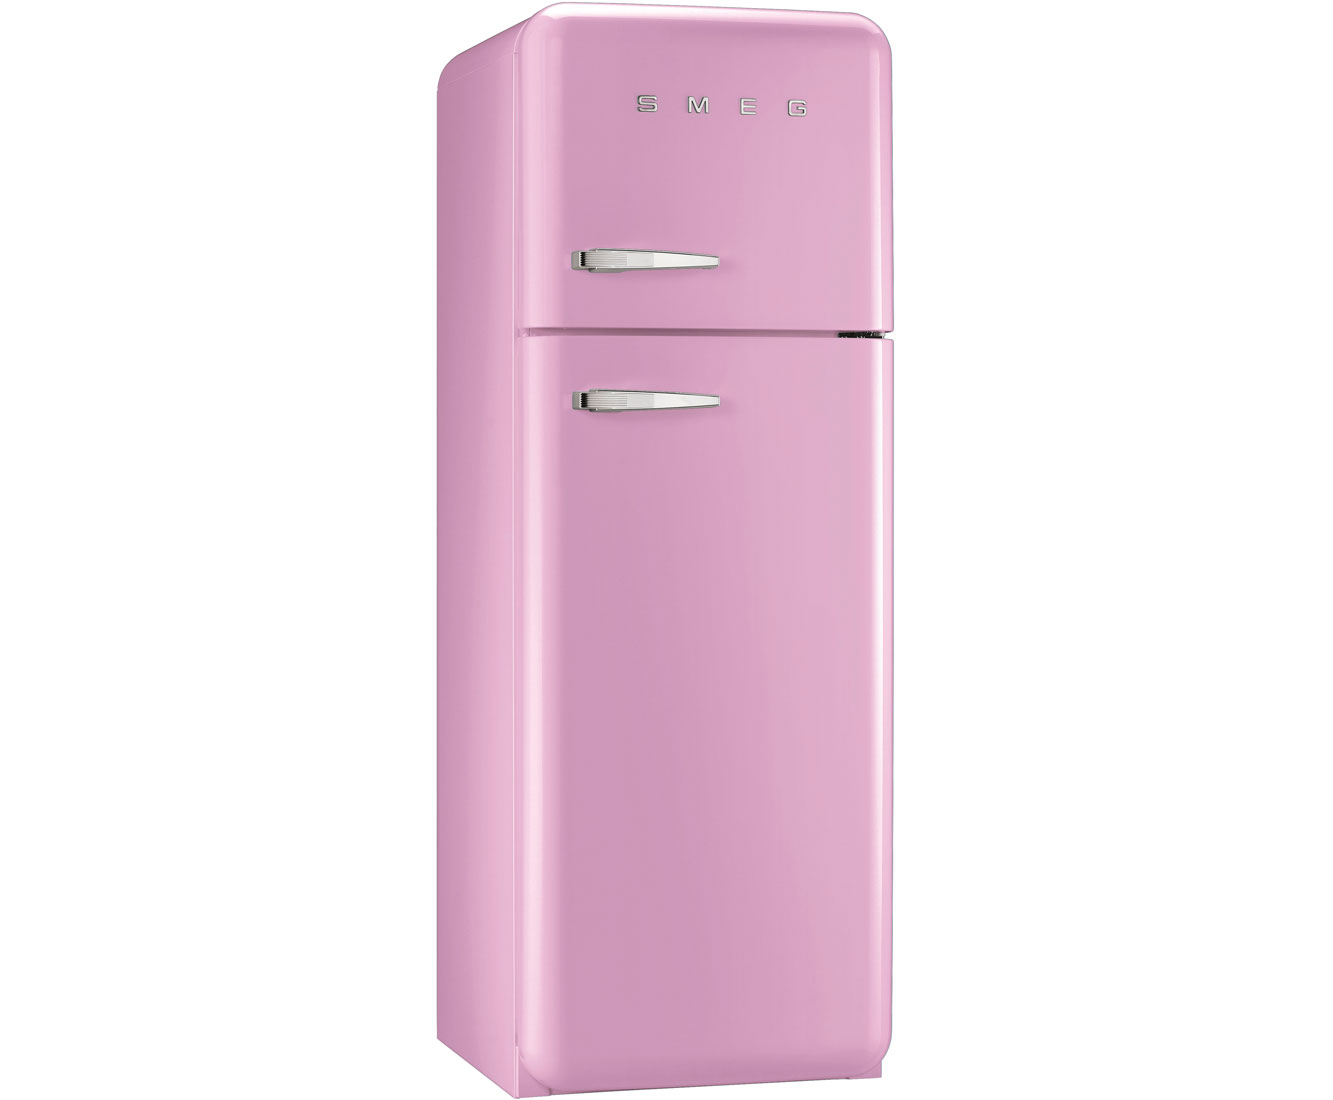 Online Fridge Pink Fridge Freezer Shop For Cheap Fridge Freezers And